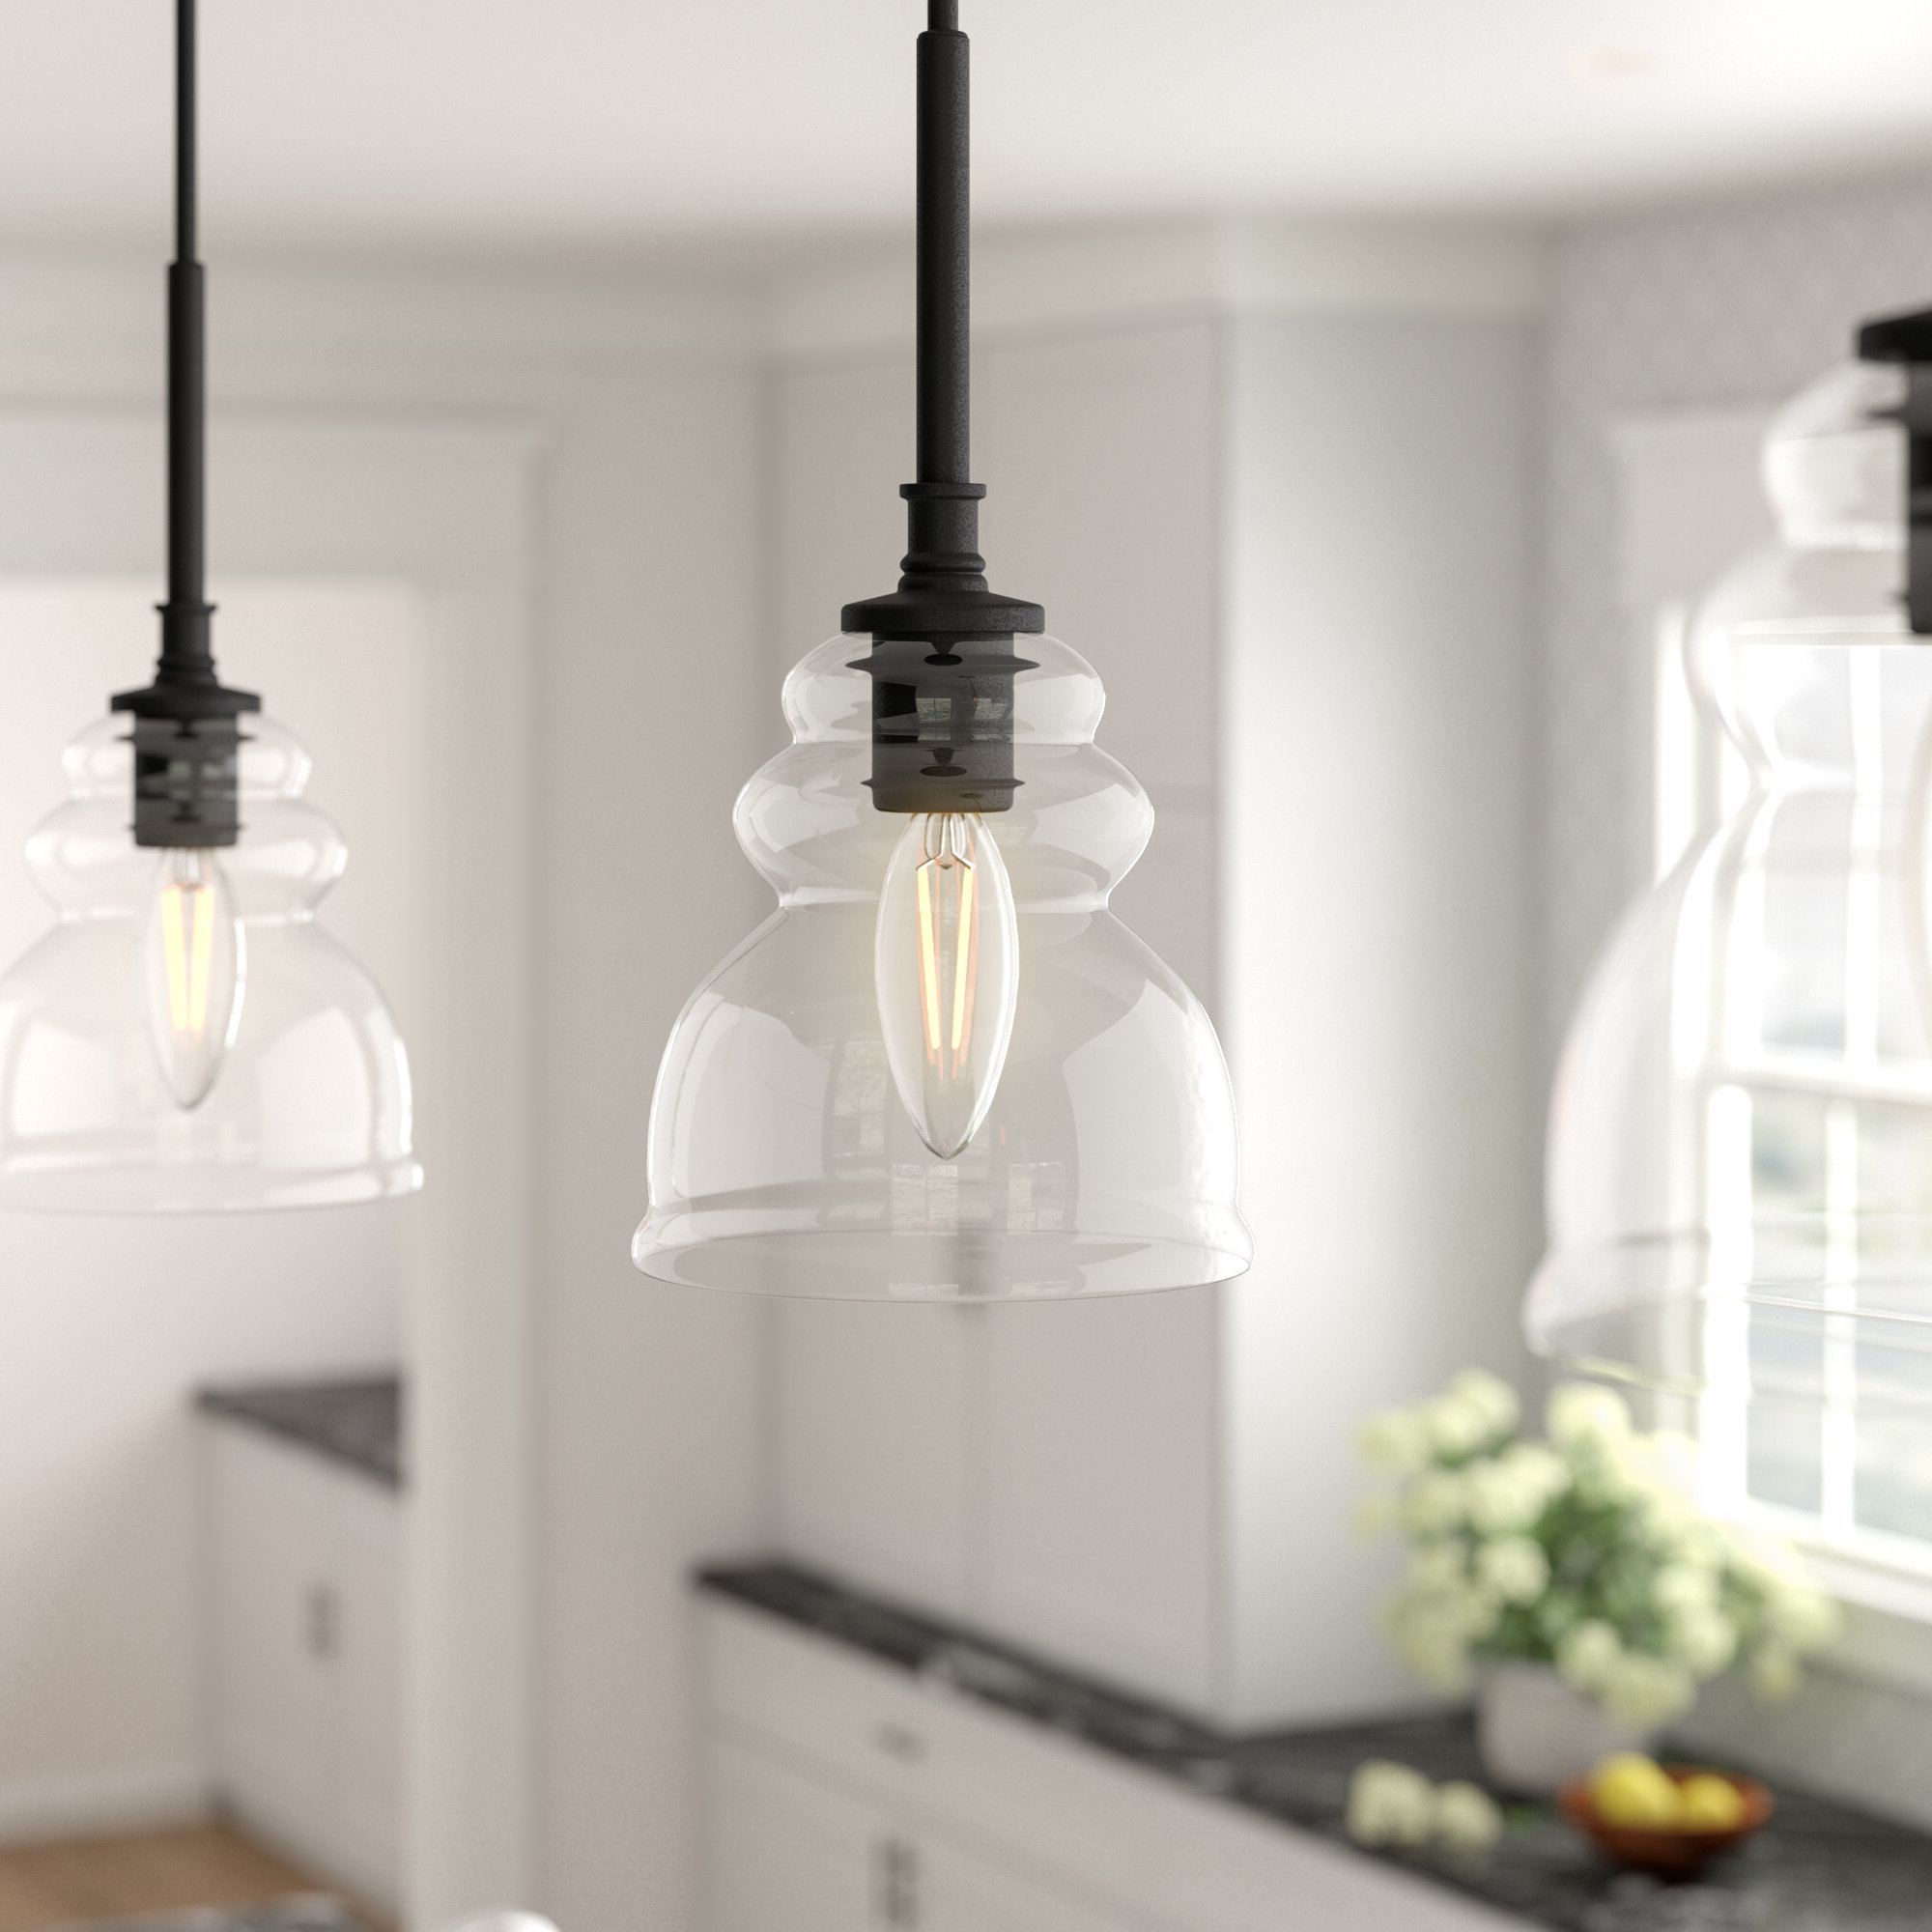 Widely Used Roslindale 1 Light Single Bell Pendants Throughout Arla 1 Light Single Bell Pendant (Gallery 19 of 20)